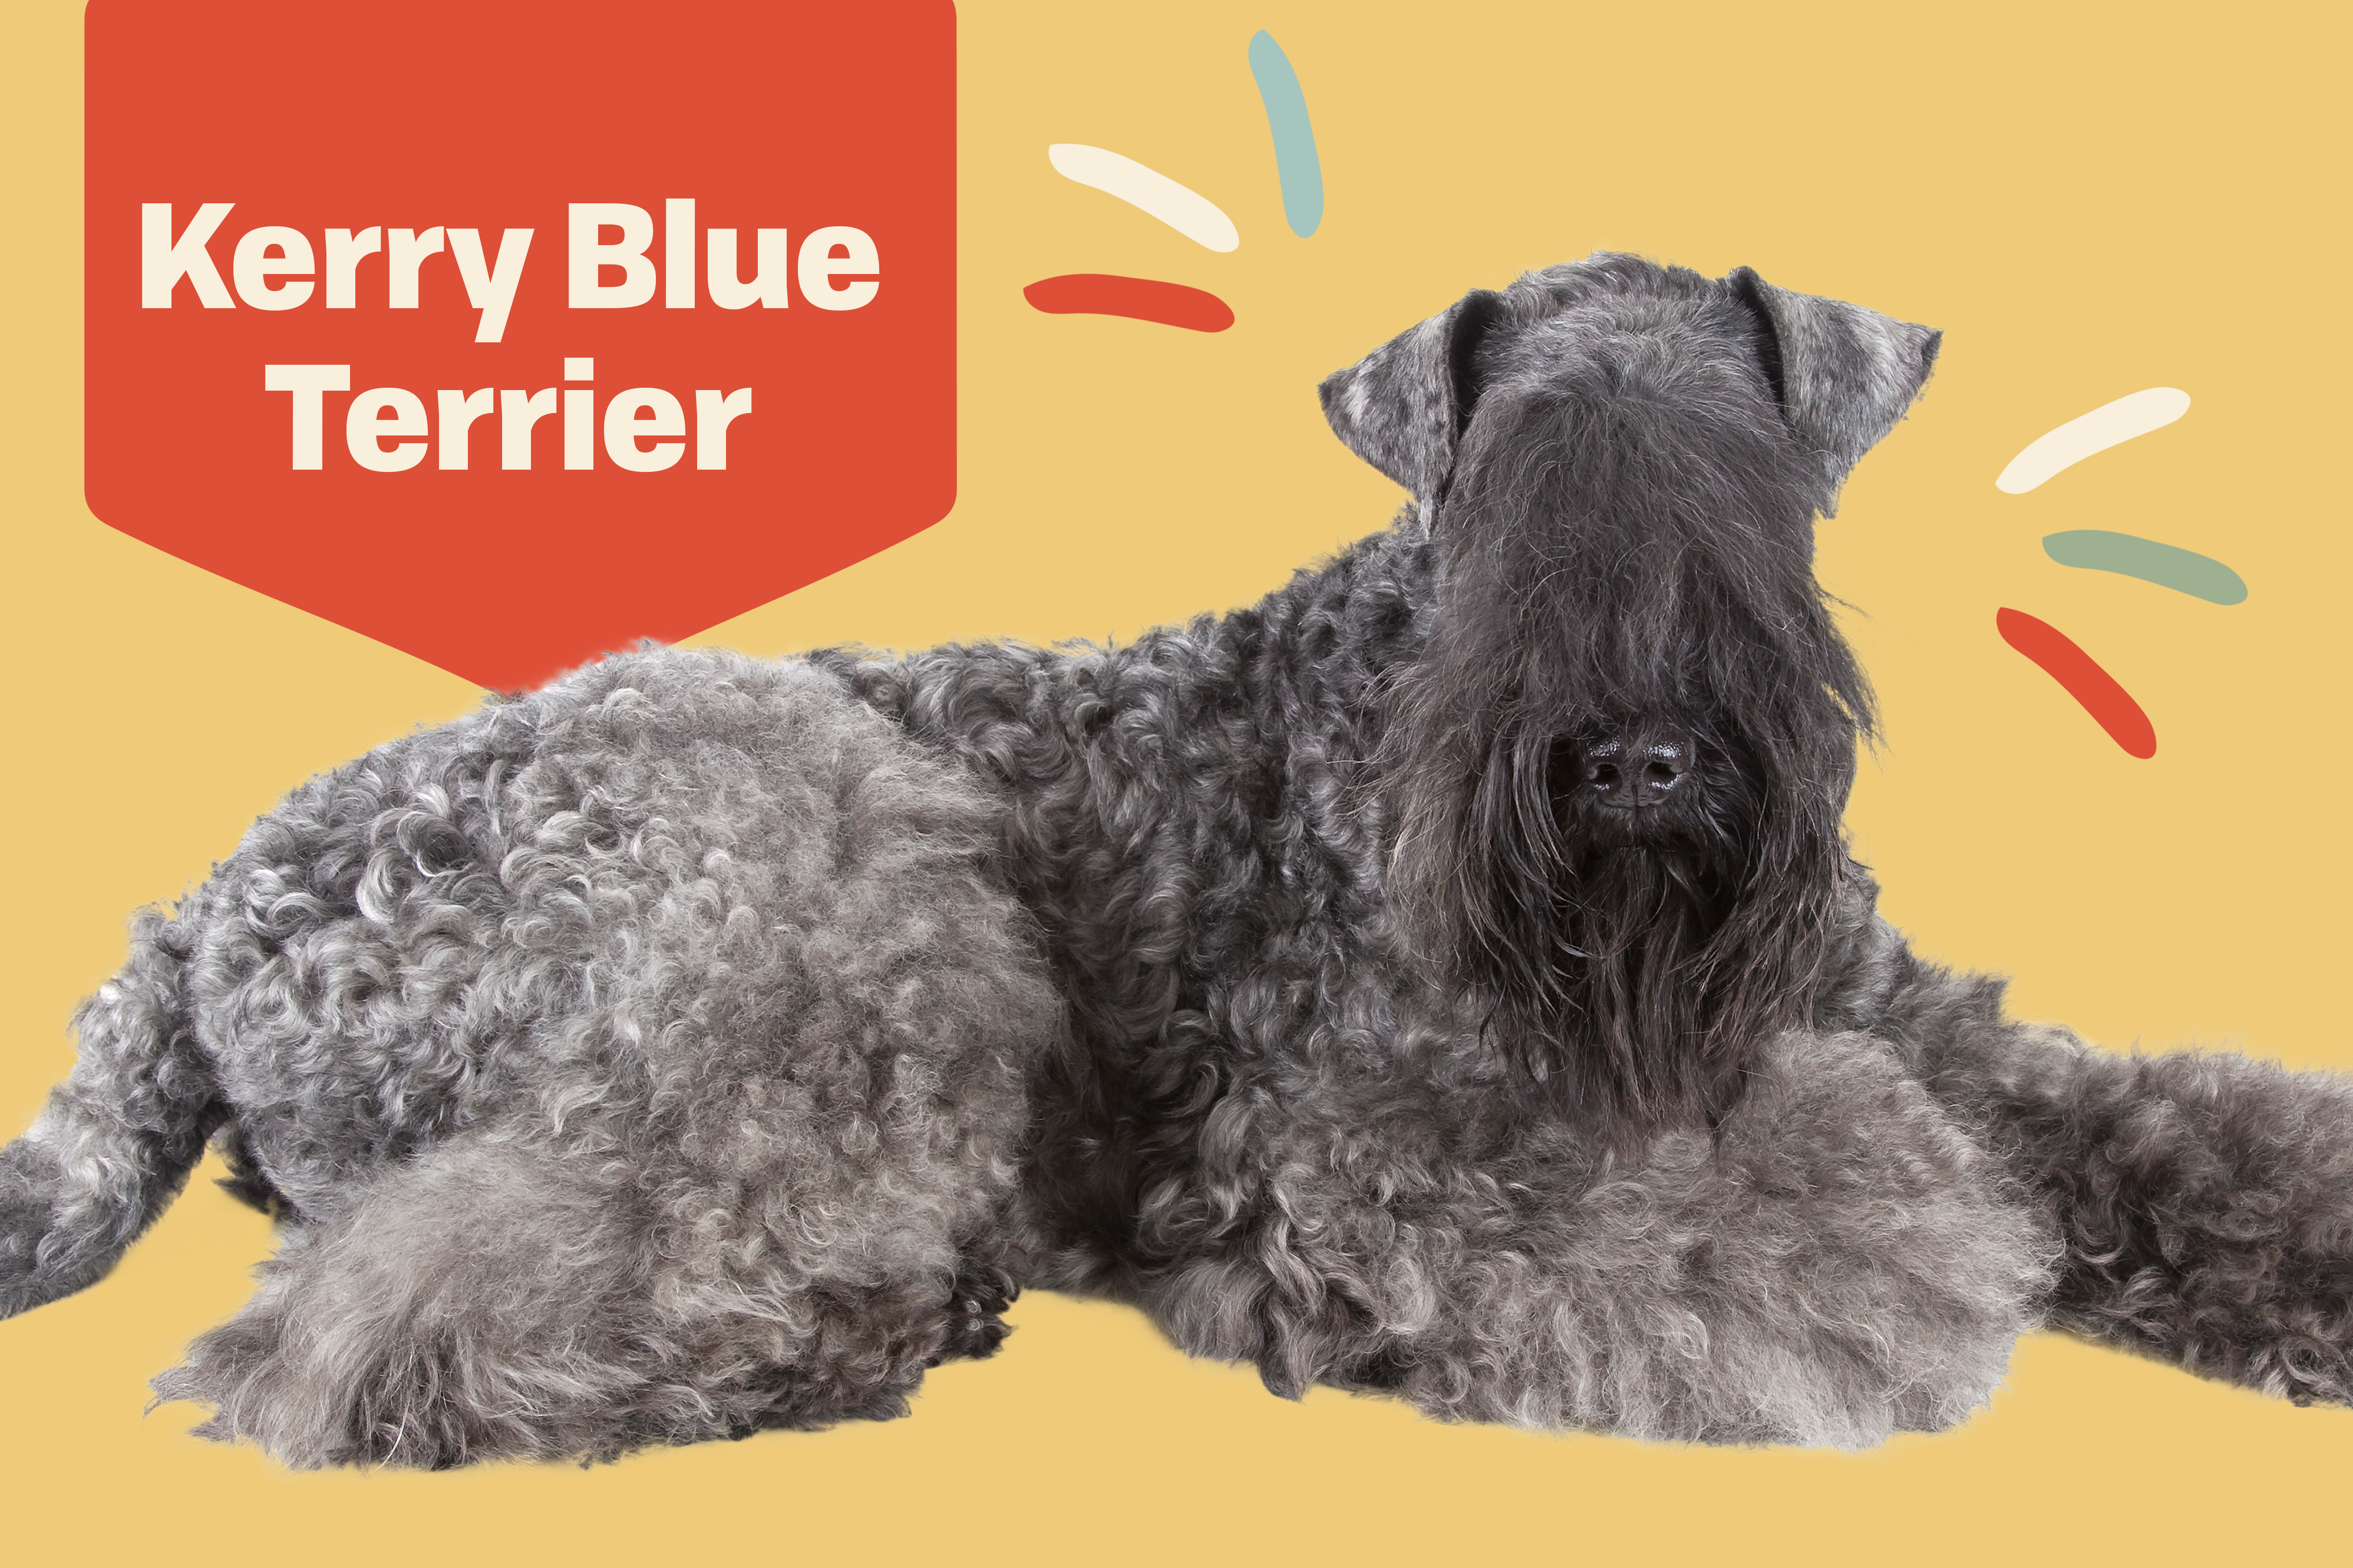 kerry blue terrier dog breed profile treatment on yellow background